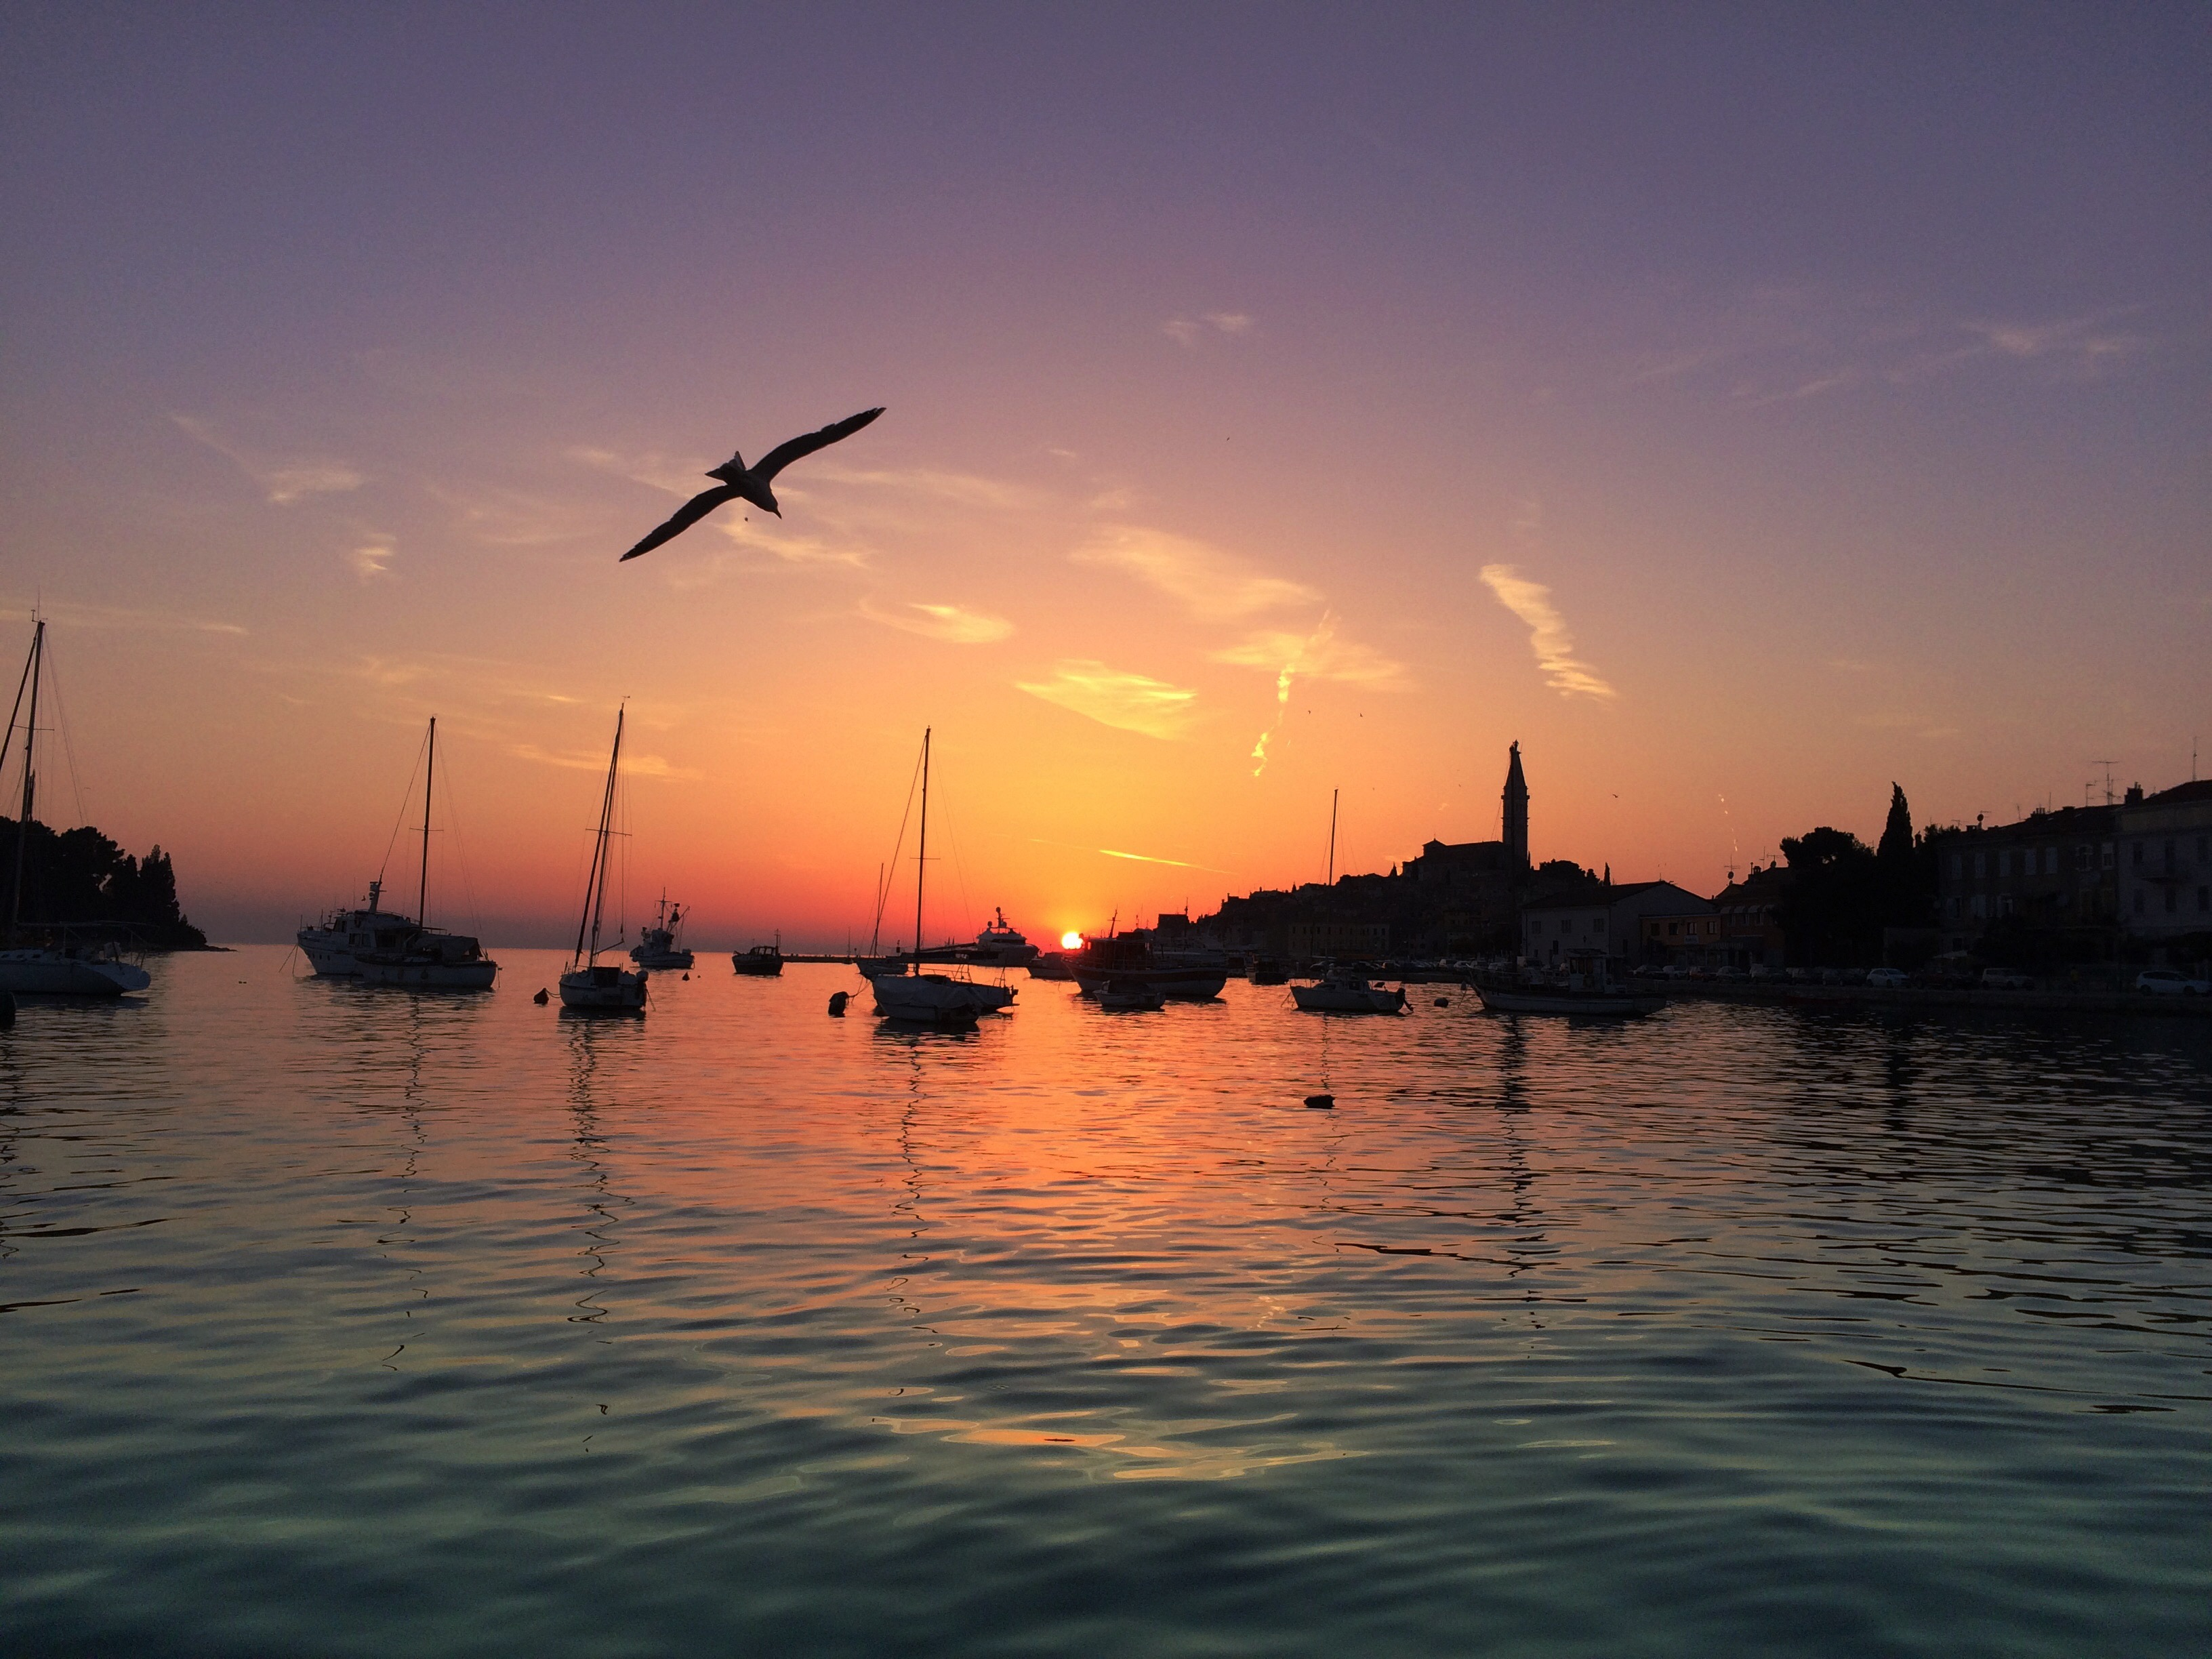 5-rovinj-croatia-sunset-silhouettes-birds-girltripping